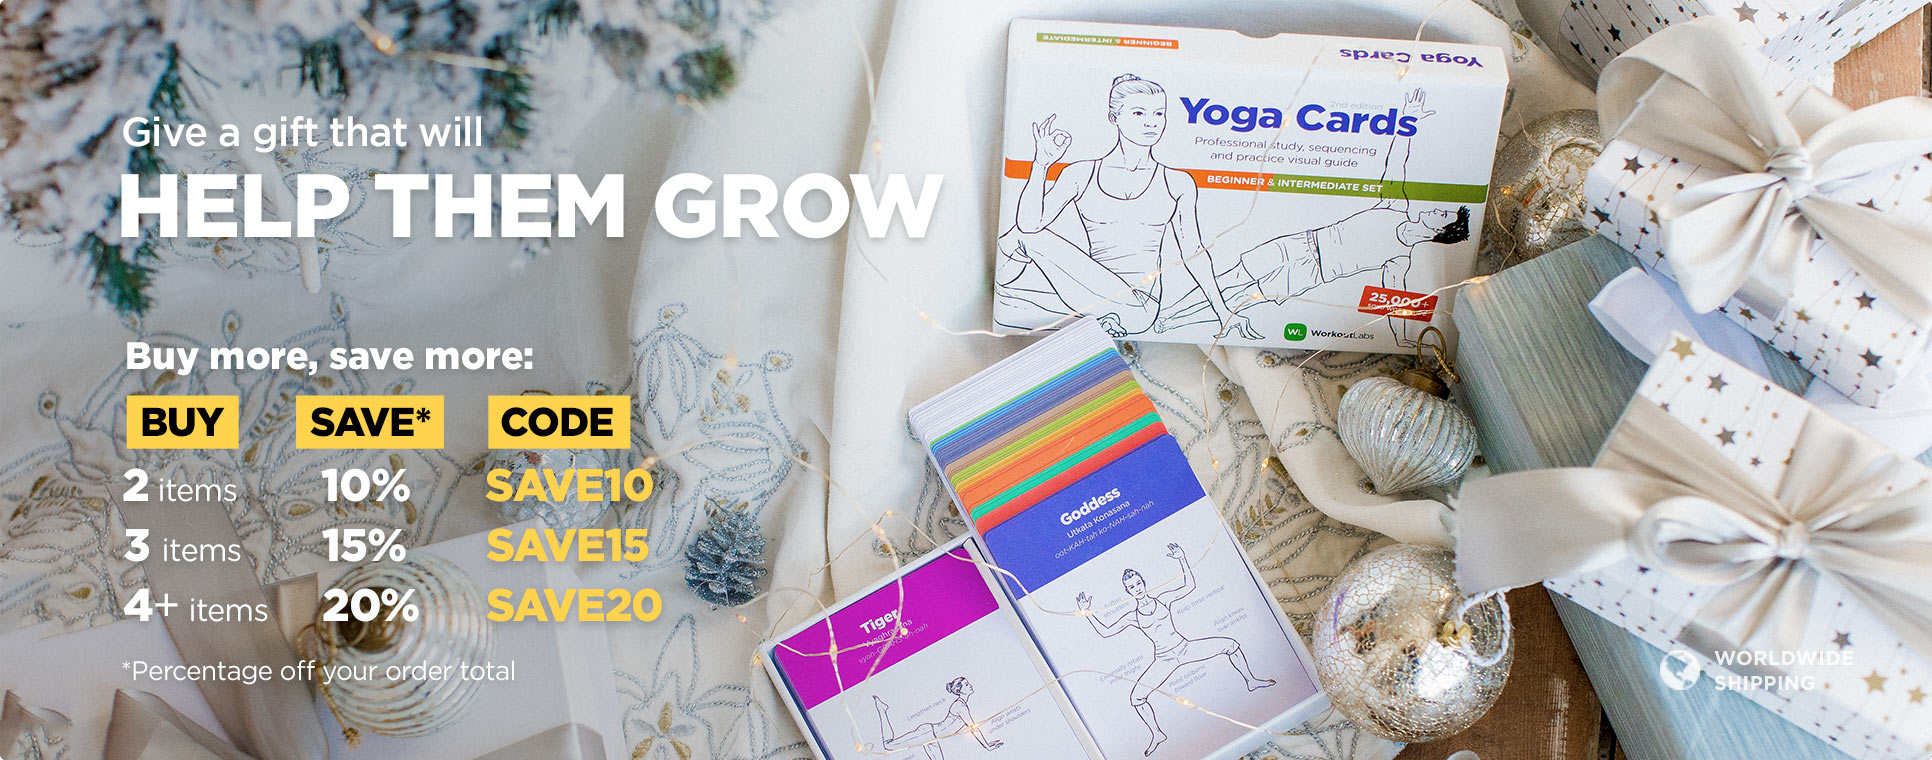 Yoga Cards & Exercise Cards – WorkoutLabs Shop